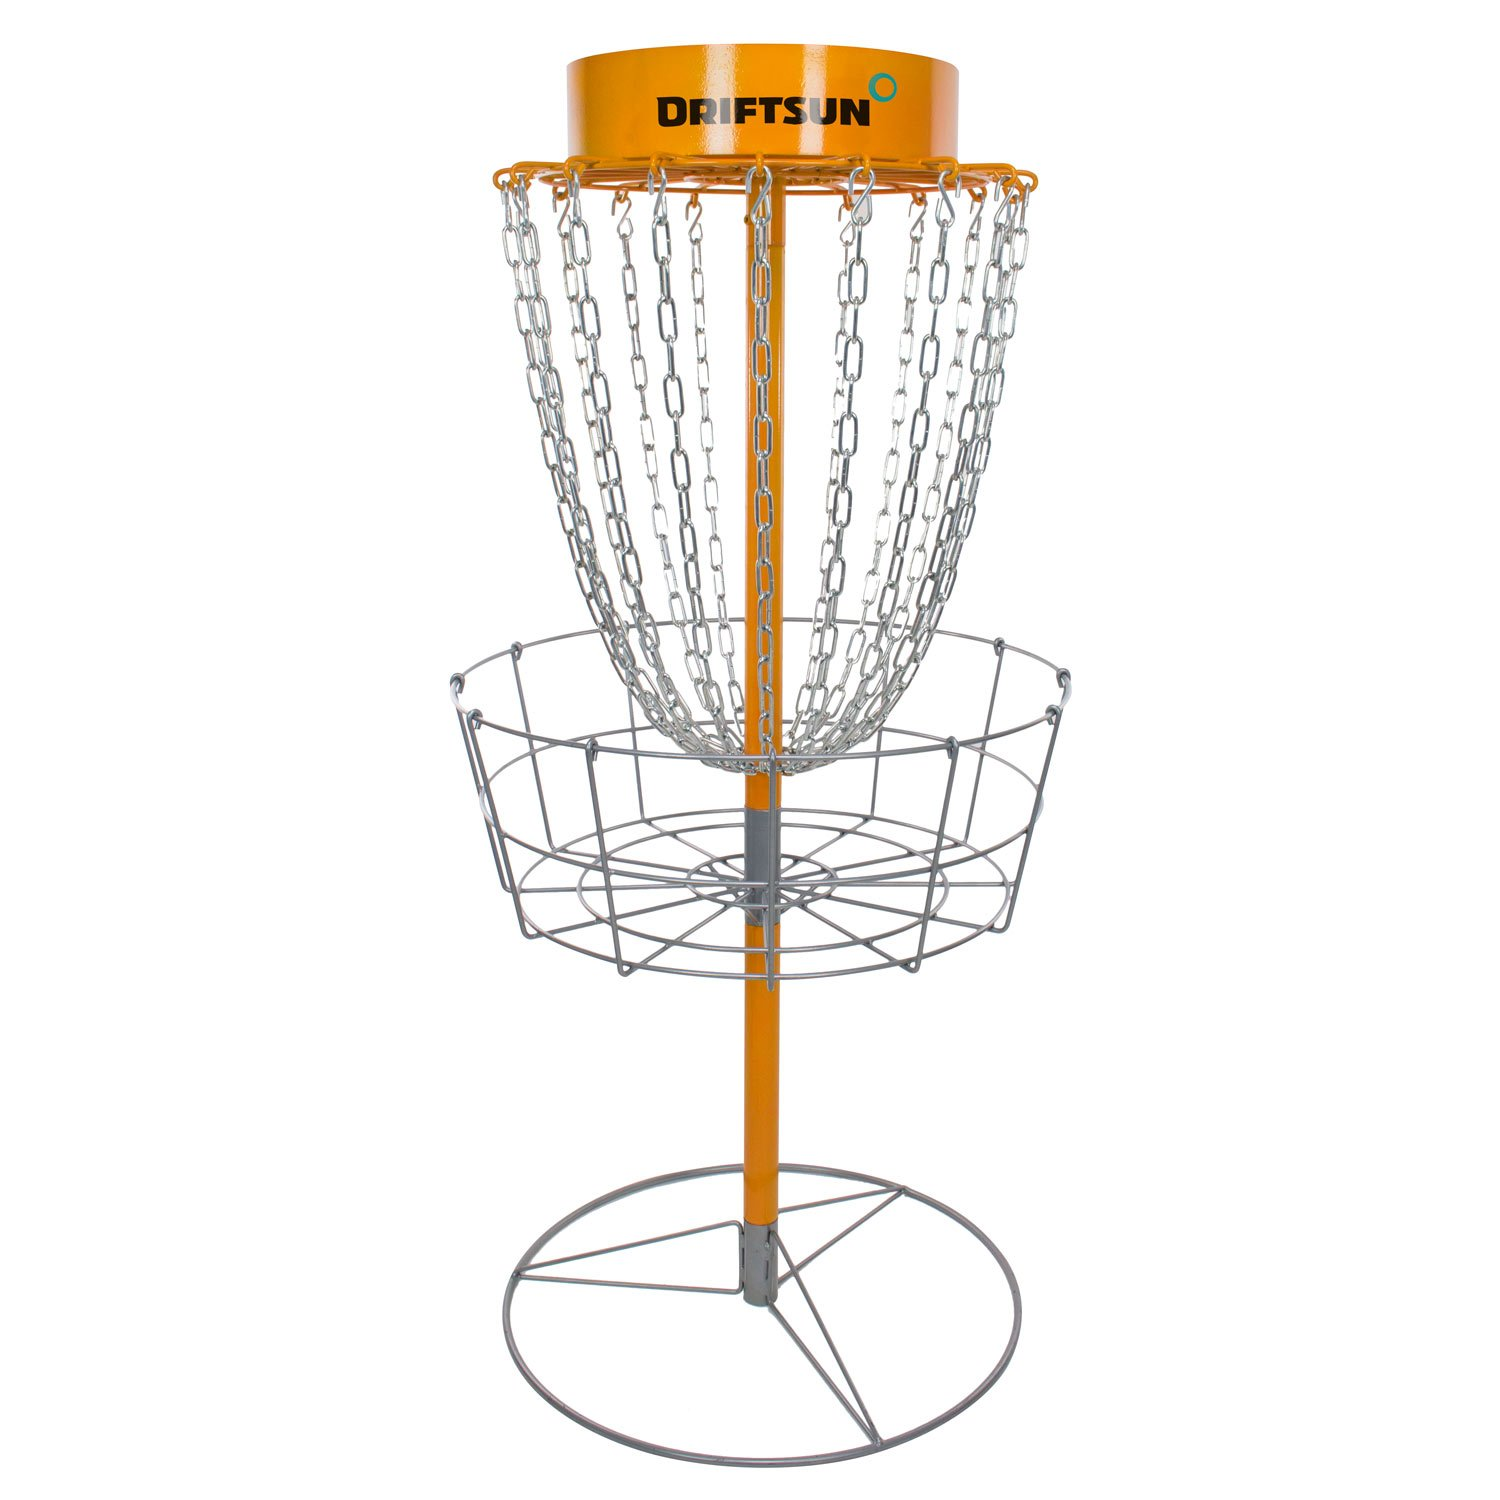 Driftsun Typhoon Disc Golf Basket - Portable Heavy Duty Disc Golf Practice Target by Driftsun